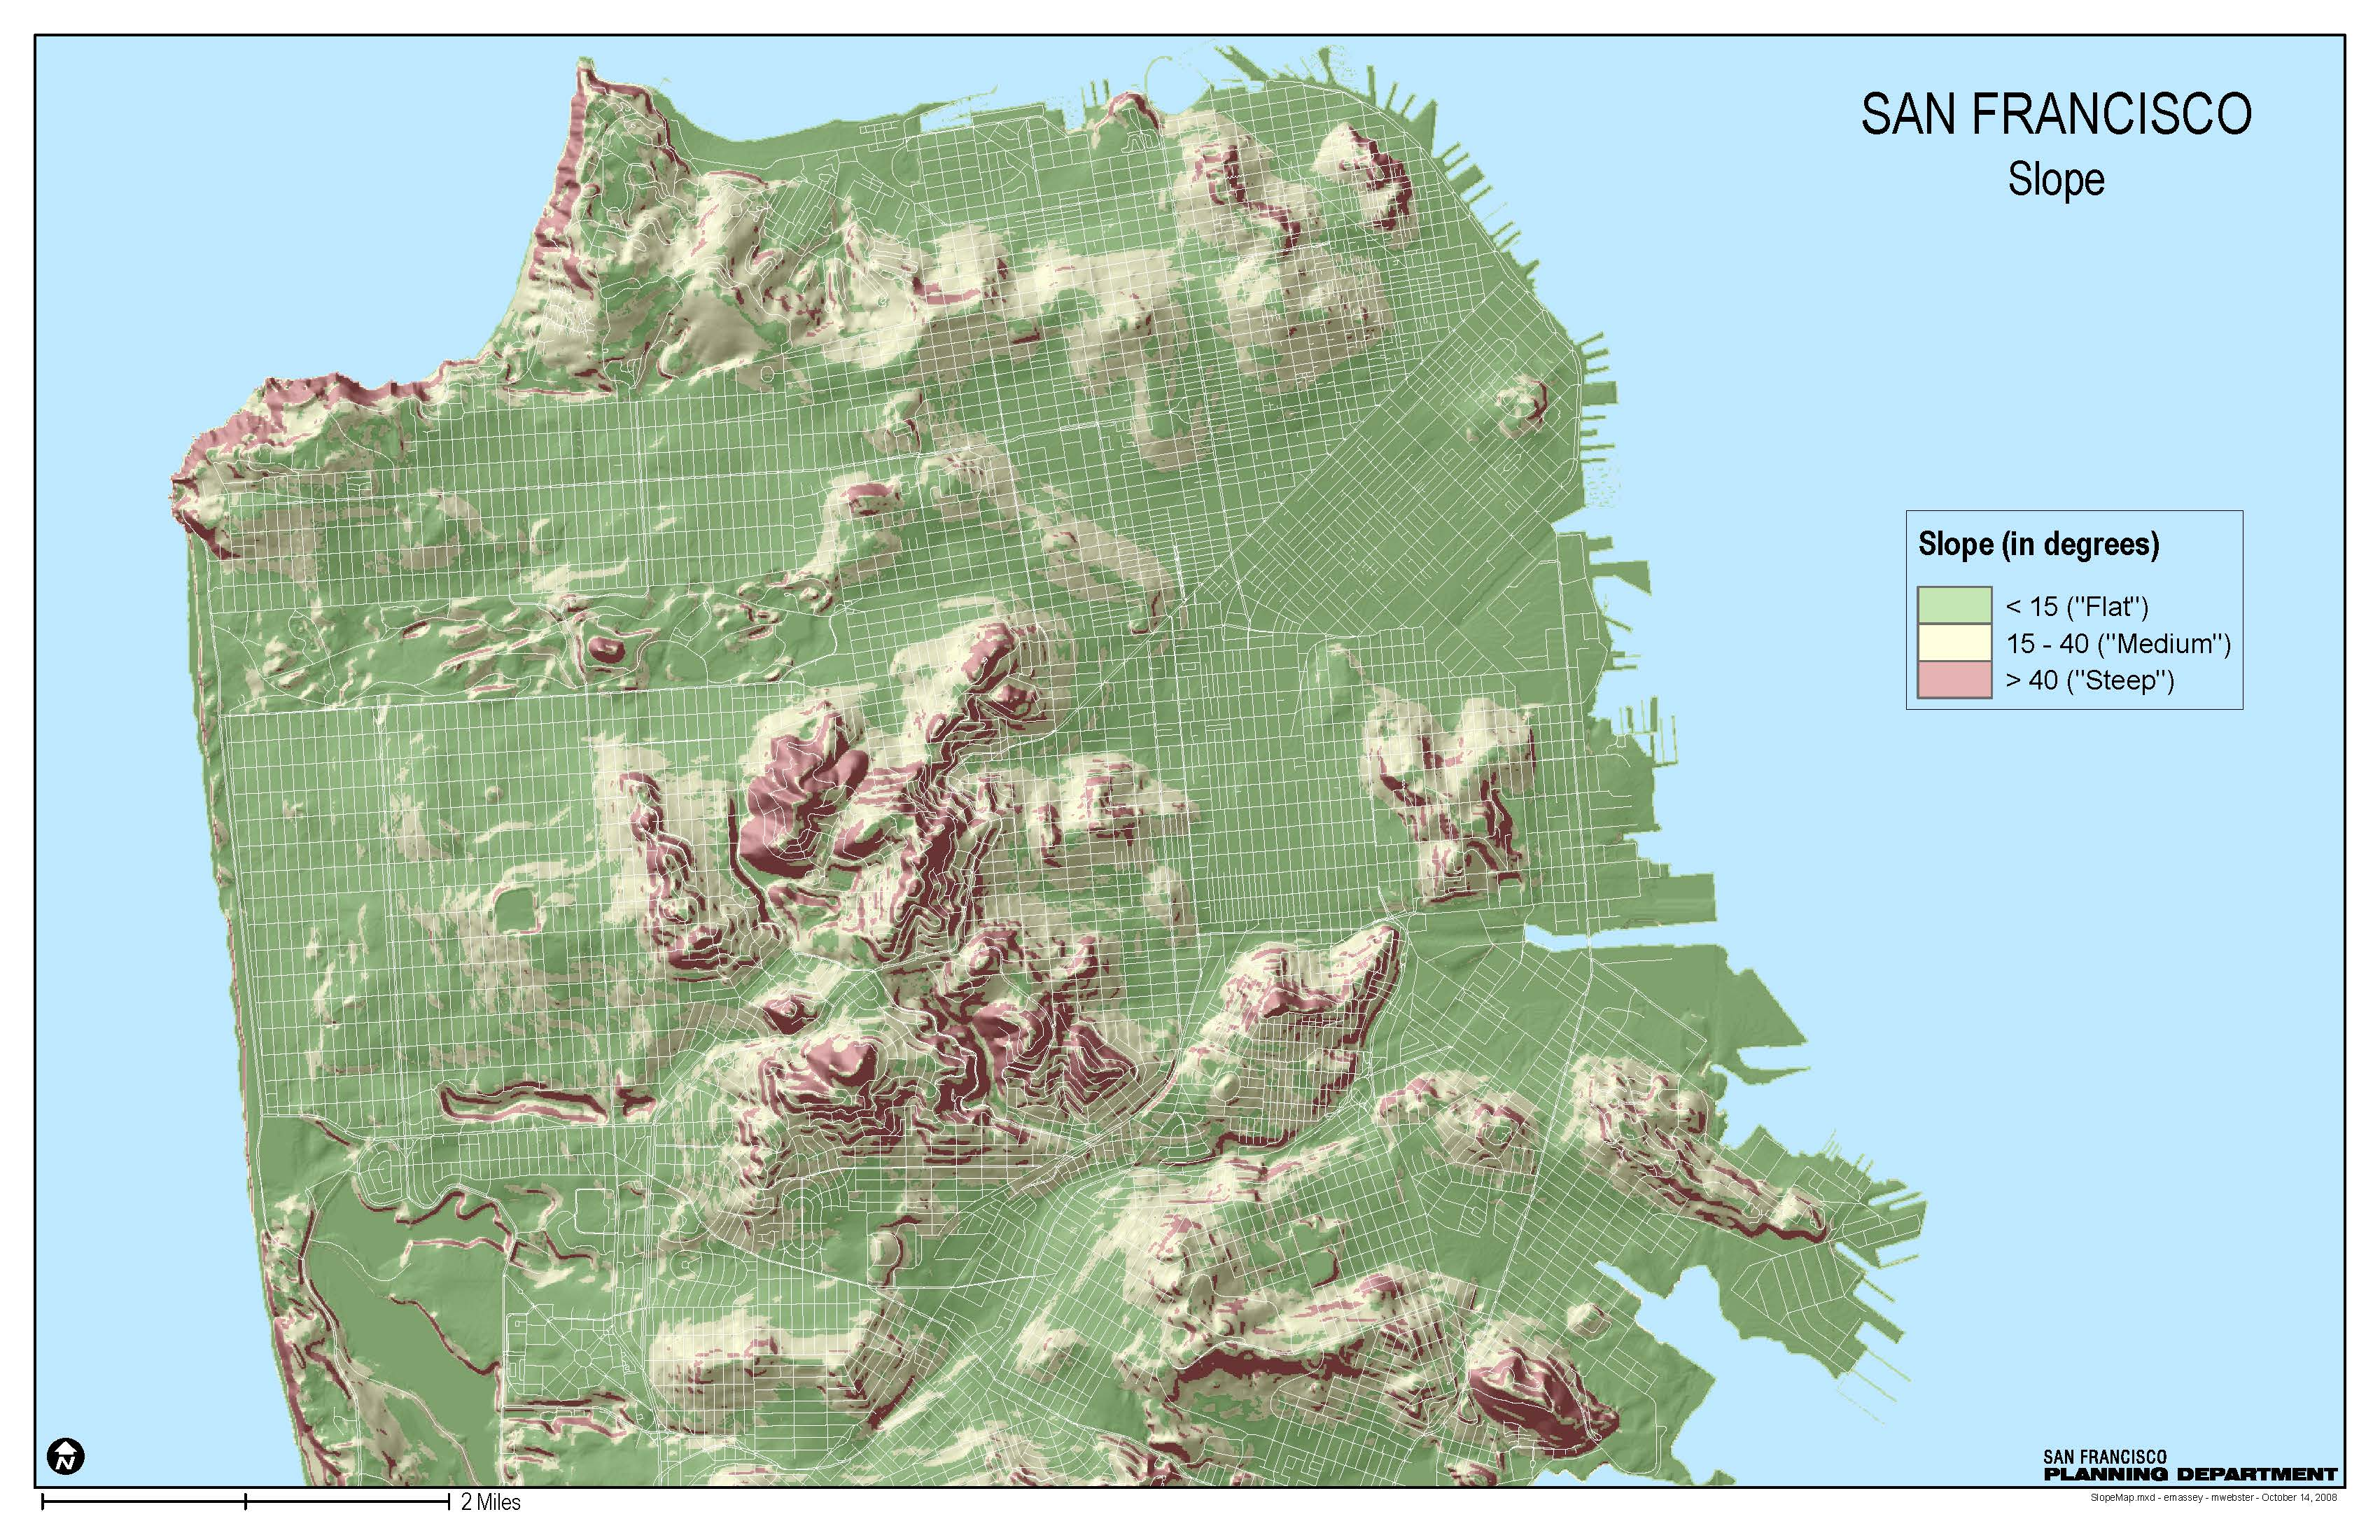 Bigger Bike Racks On Hilly Muni Routes SFMTA - San francisco bike map